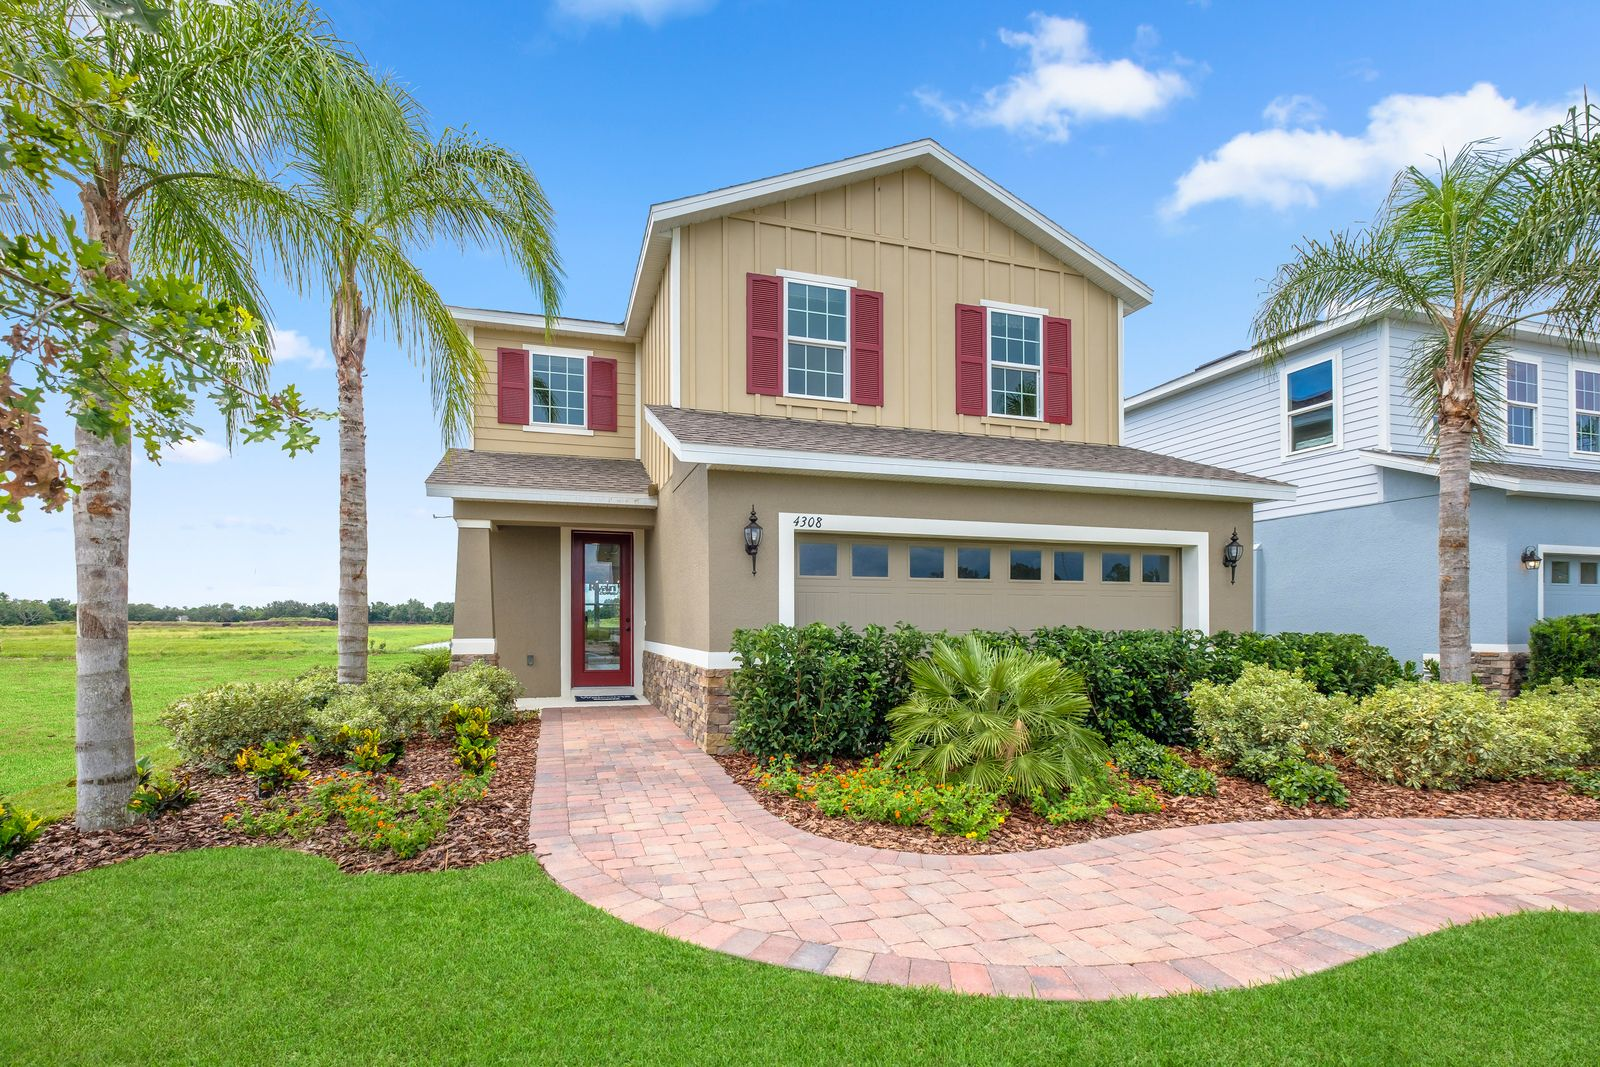 Photo of Summerland in Clermont, FL 34714